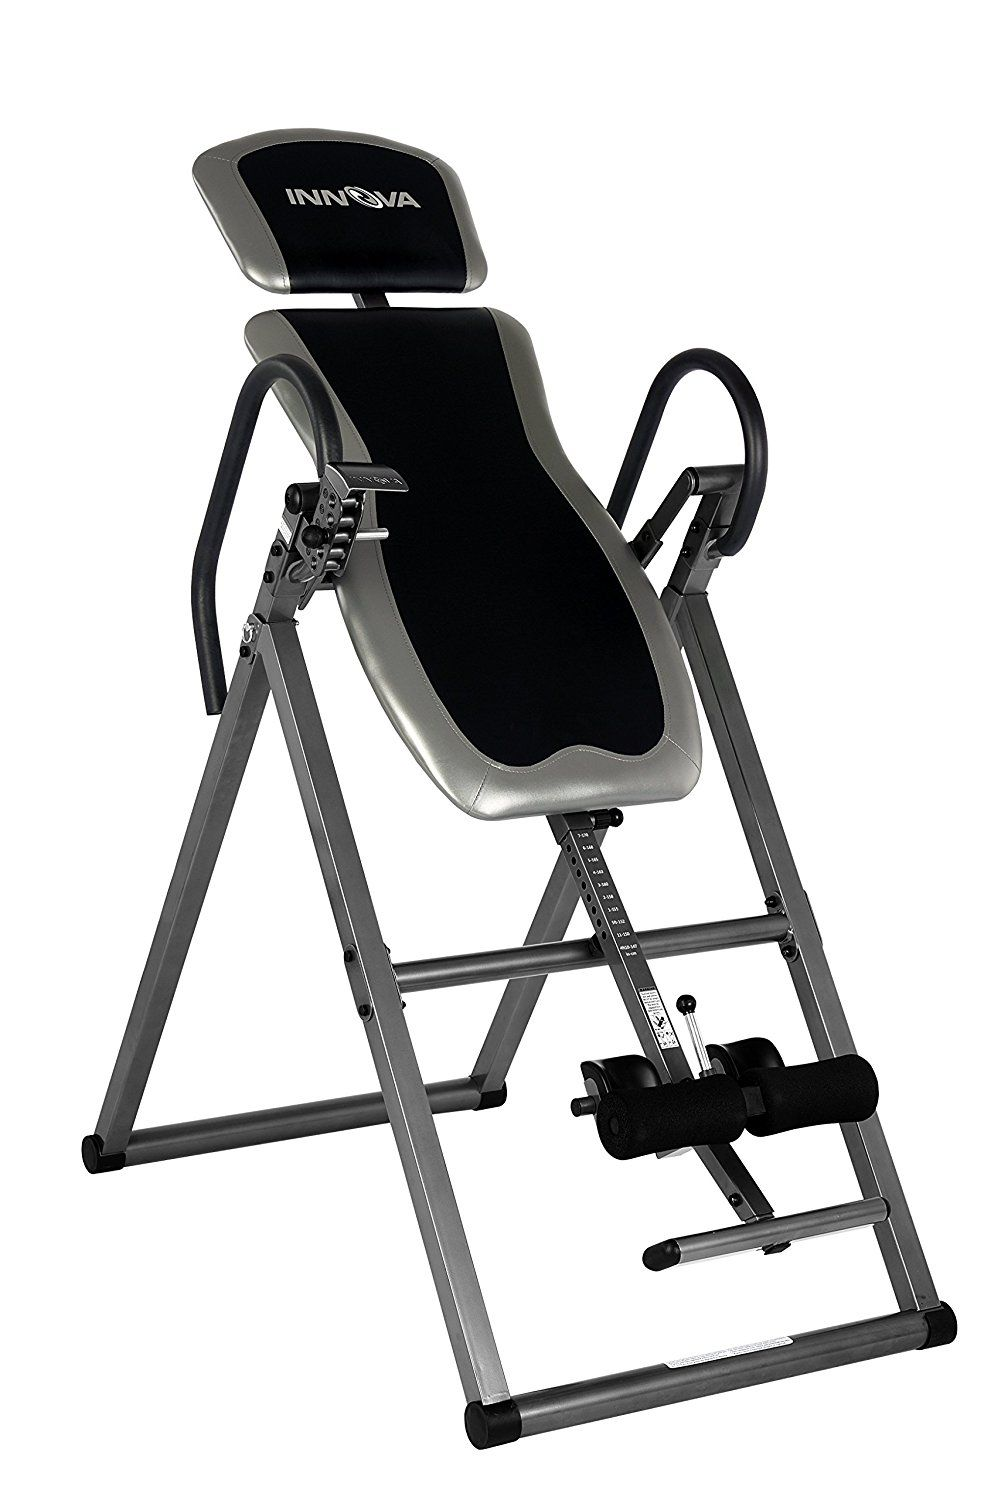 Top 10 Best Weight Capacity Inversion Tables in 2016